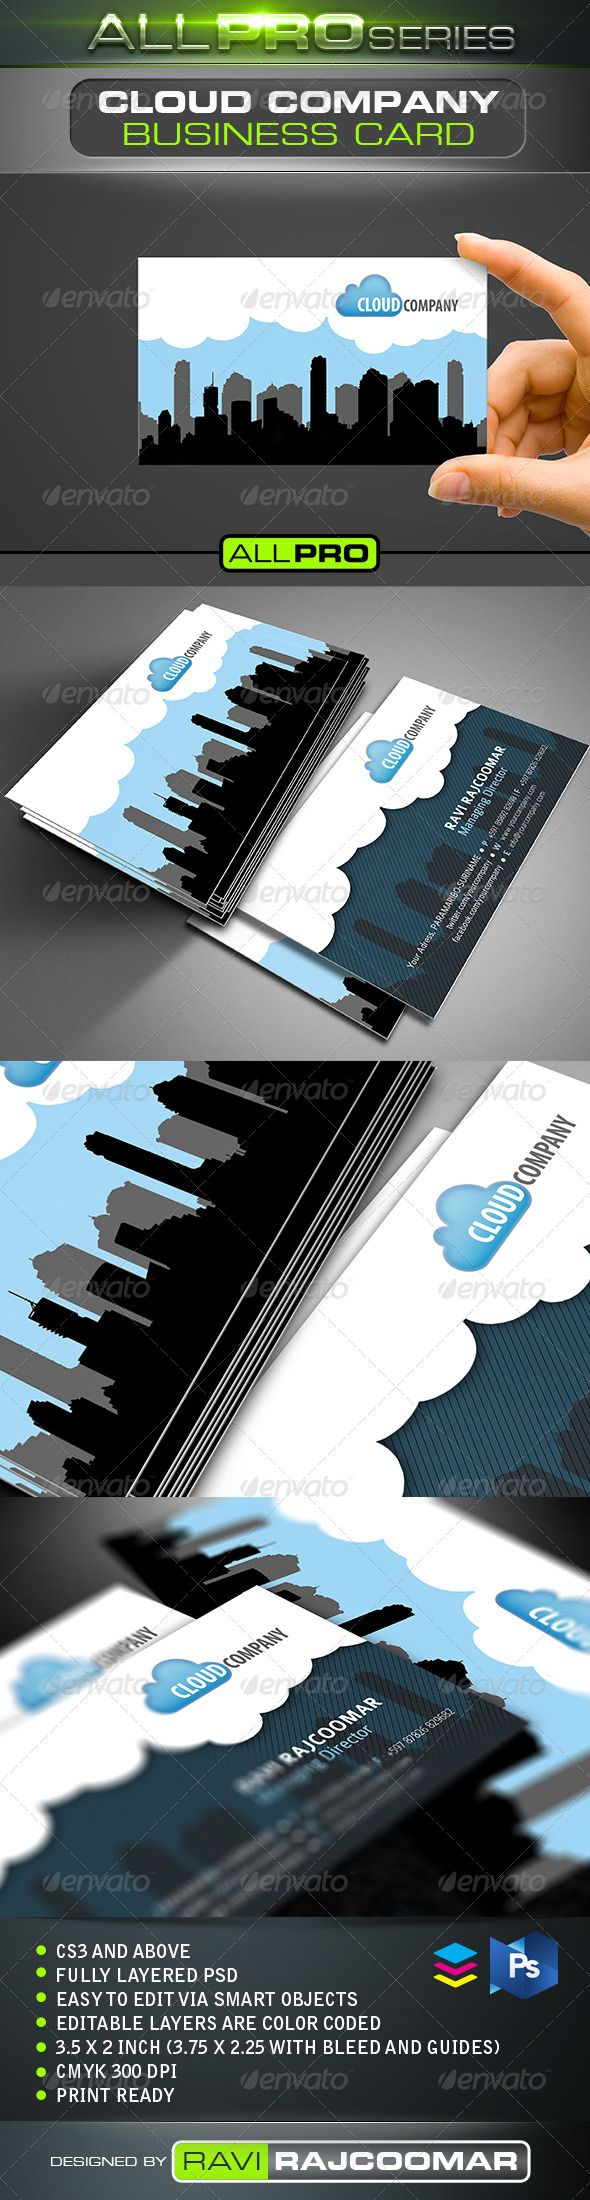 Cloud Company Business Card